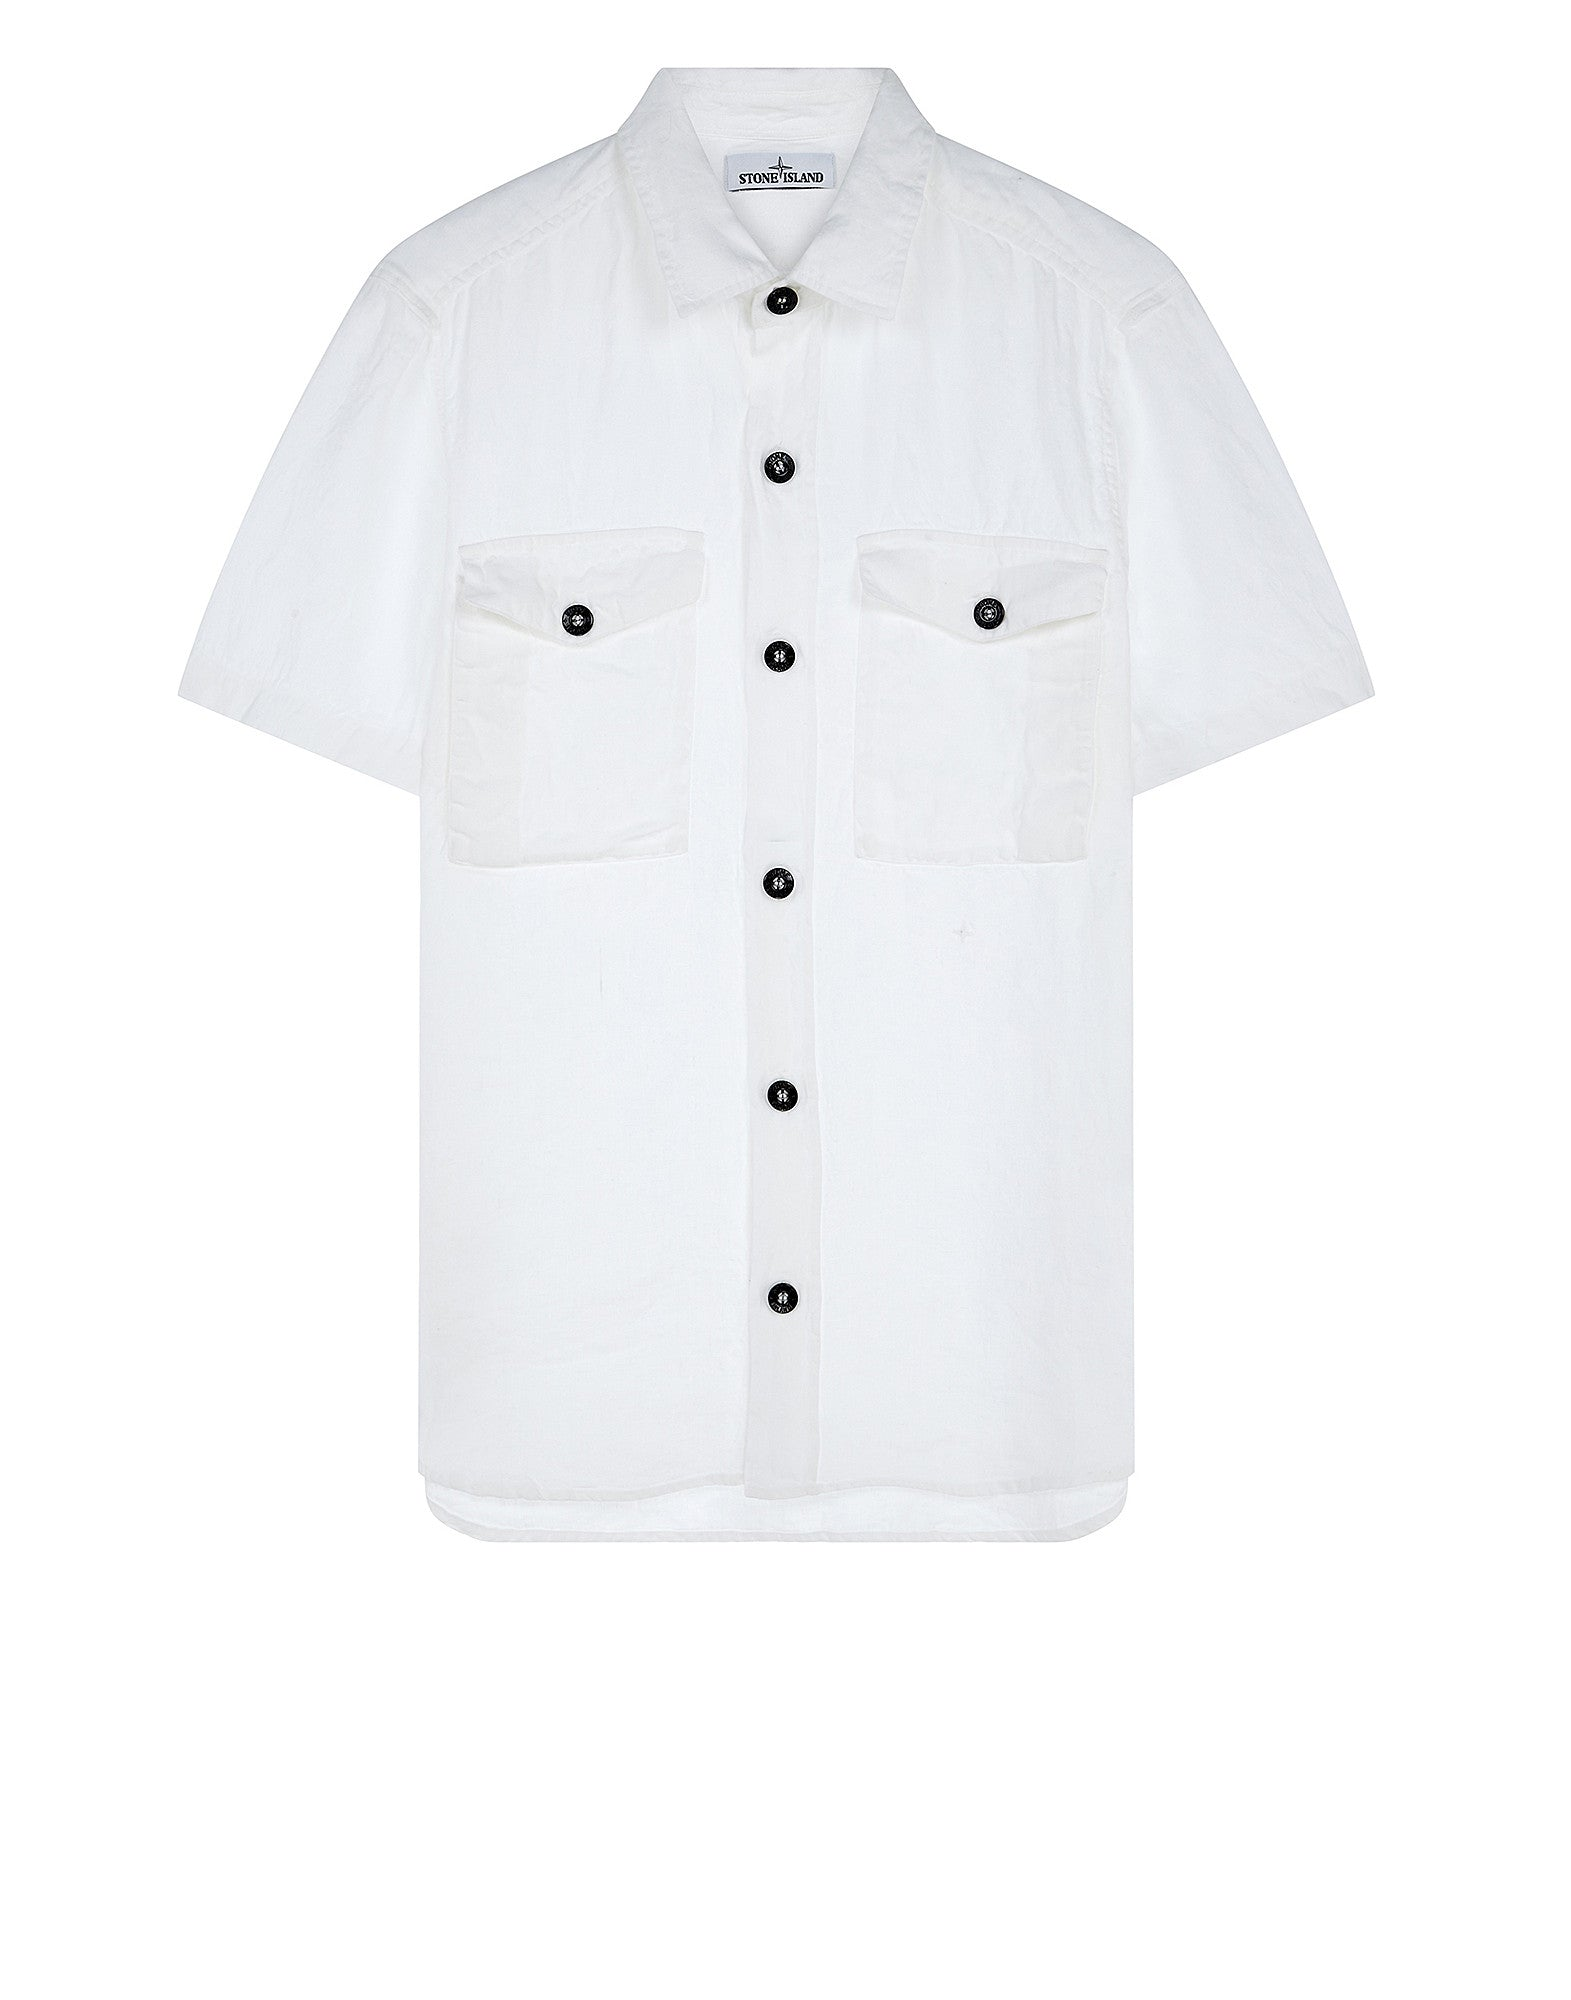 11501 Short Sleeve Shirt in White